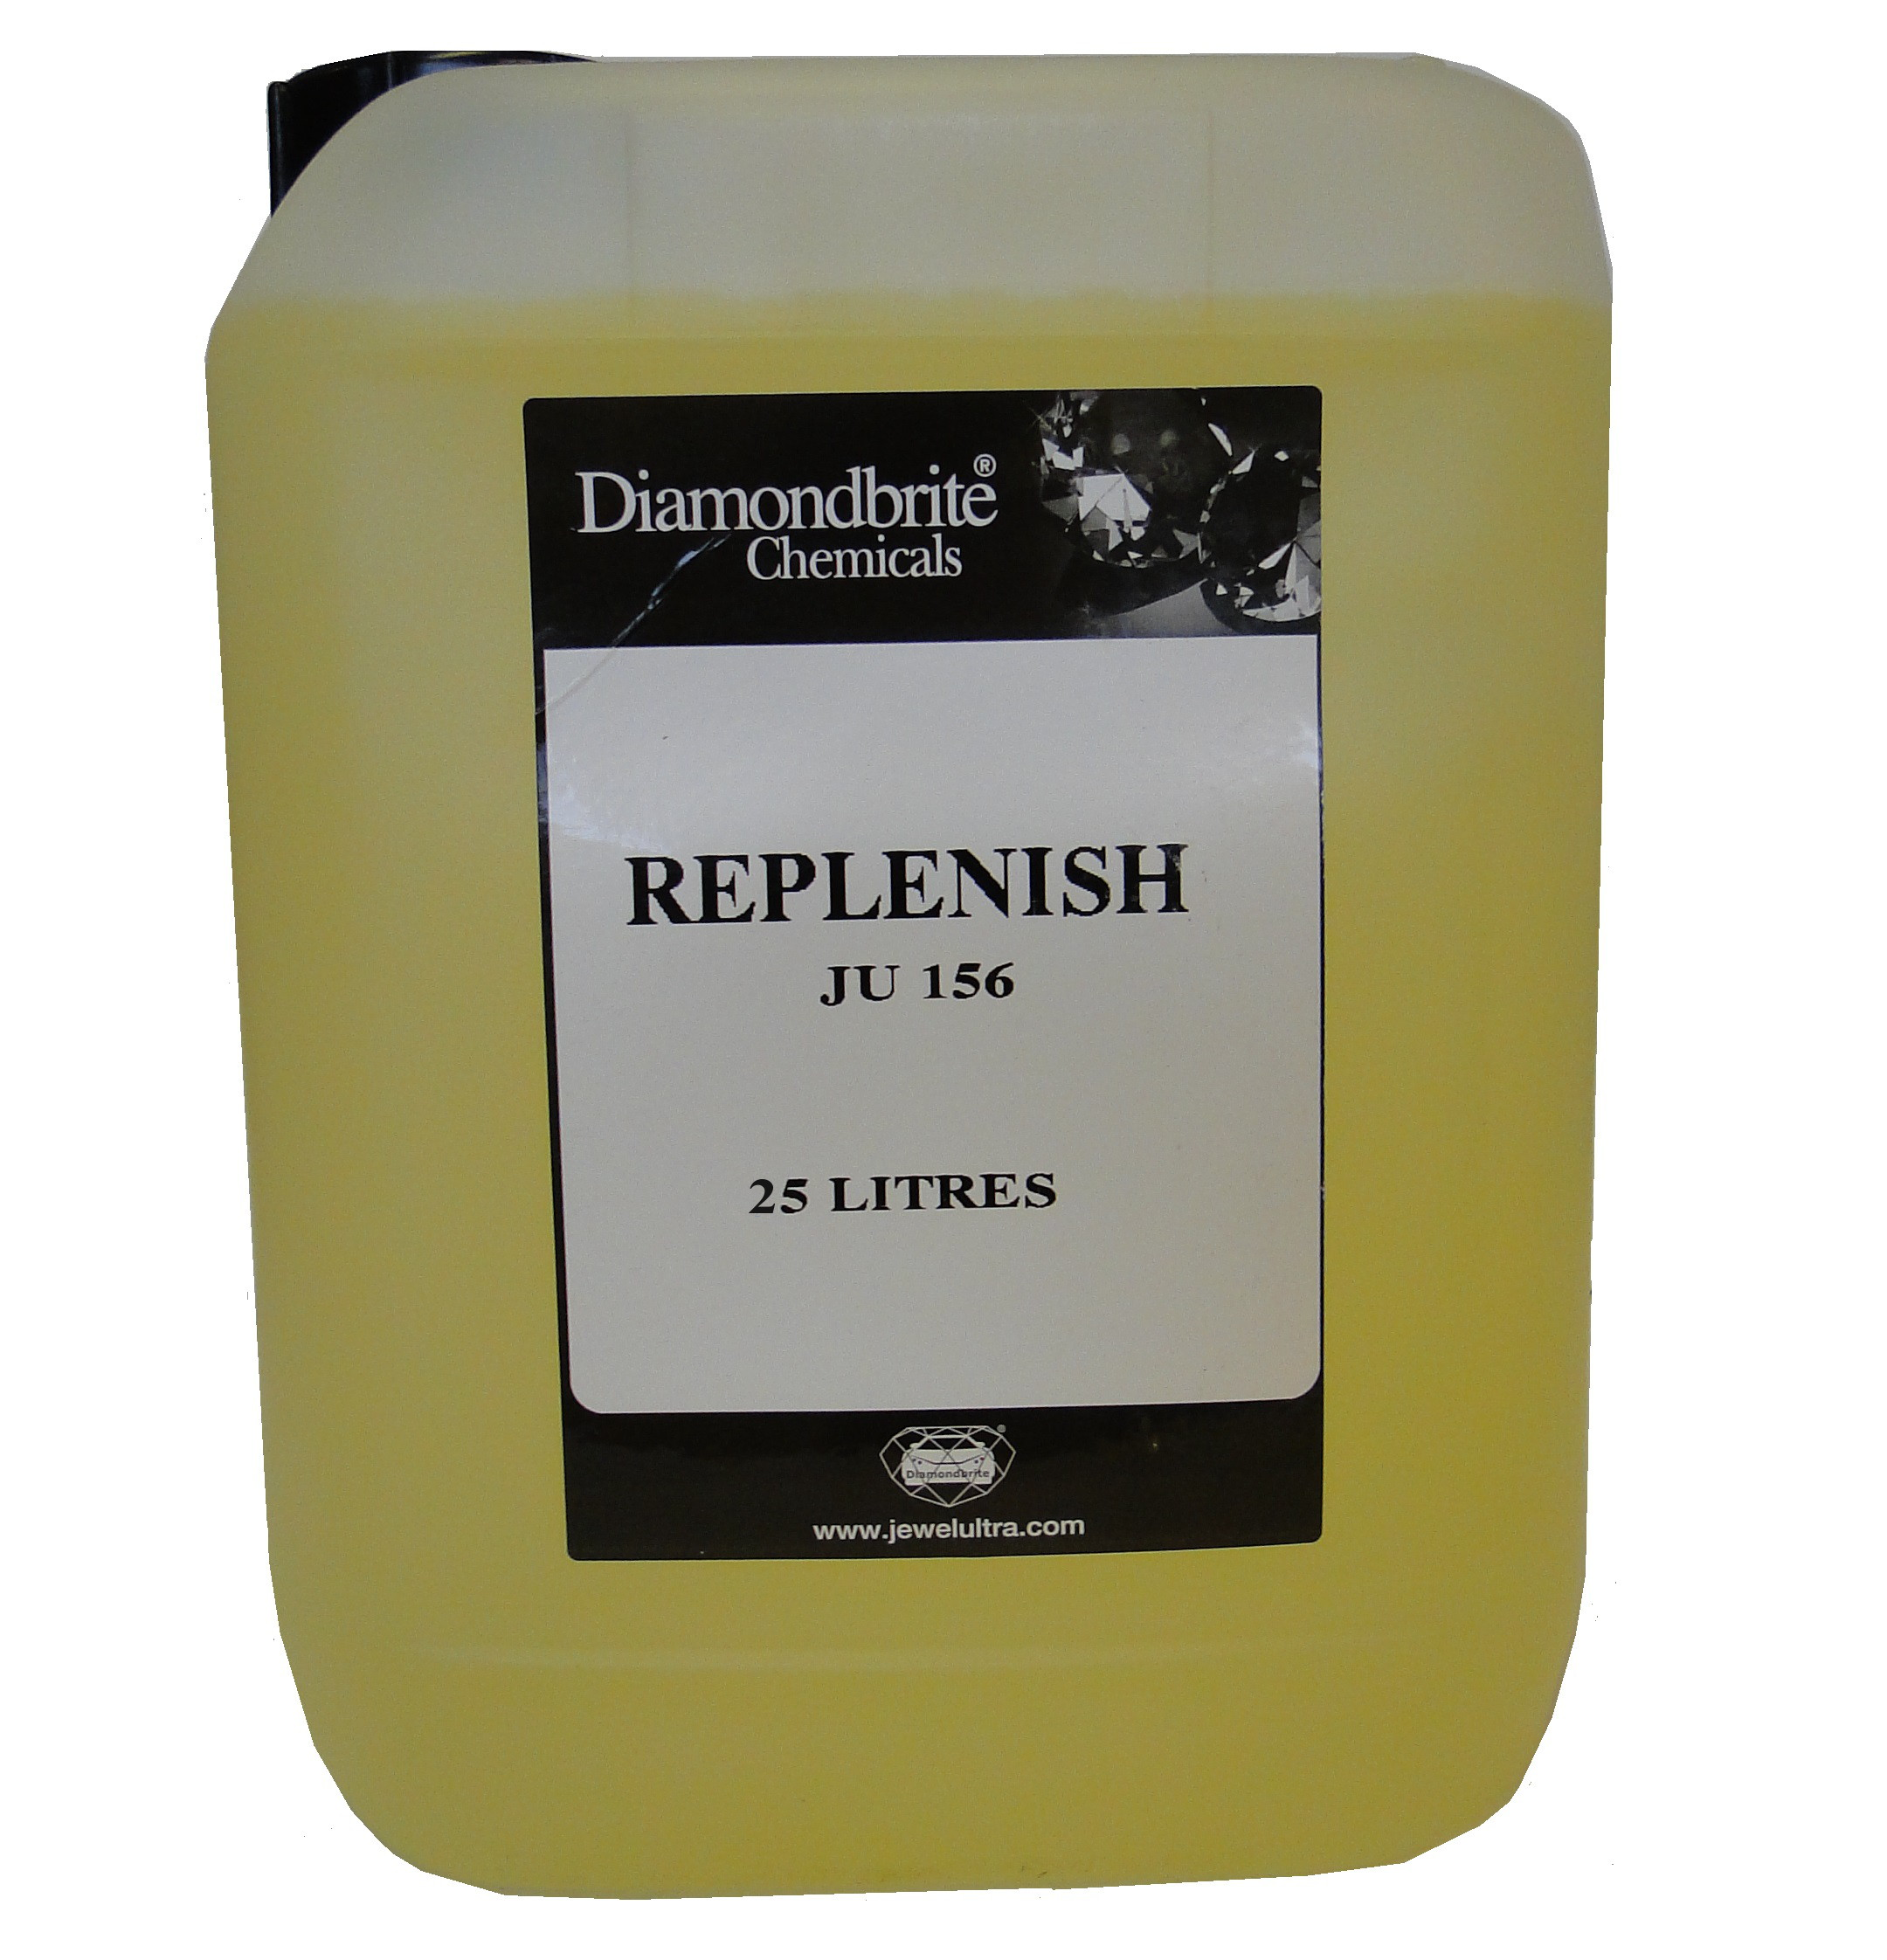 Diamondbrite-Replenish-25litre